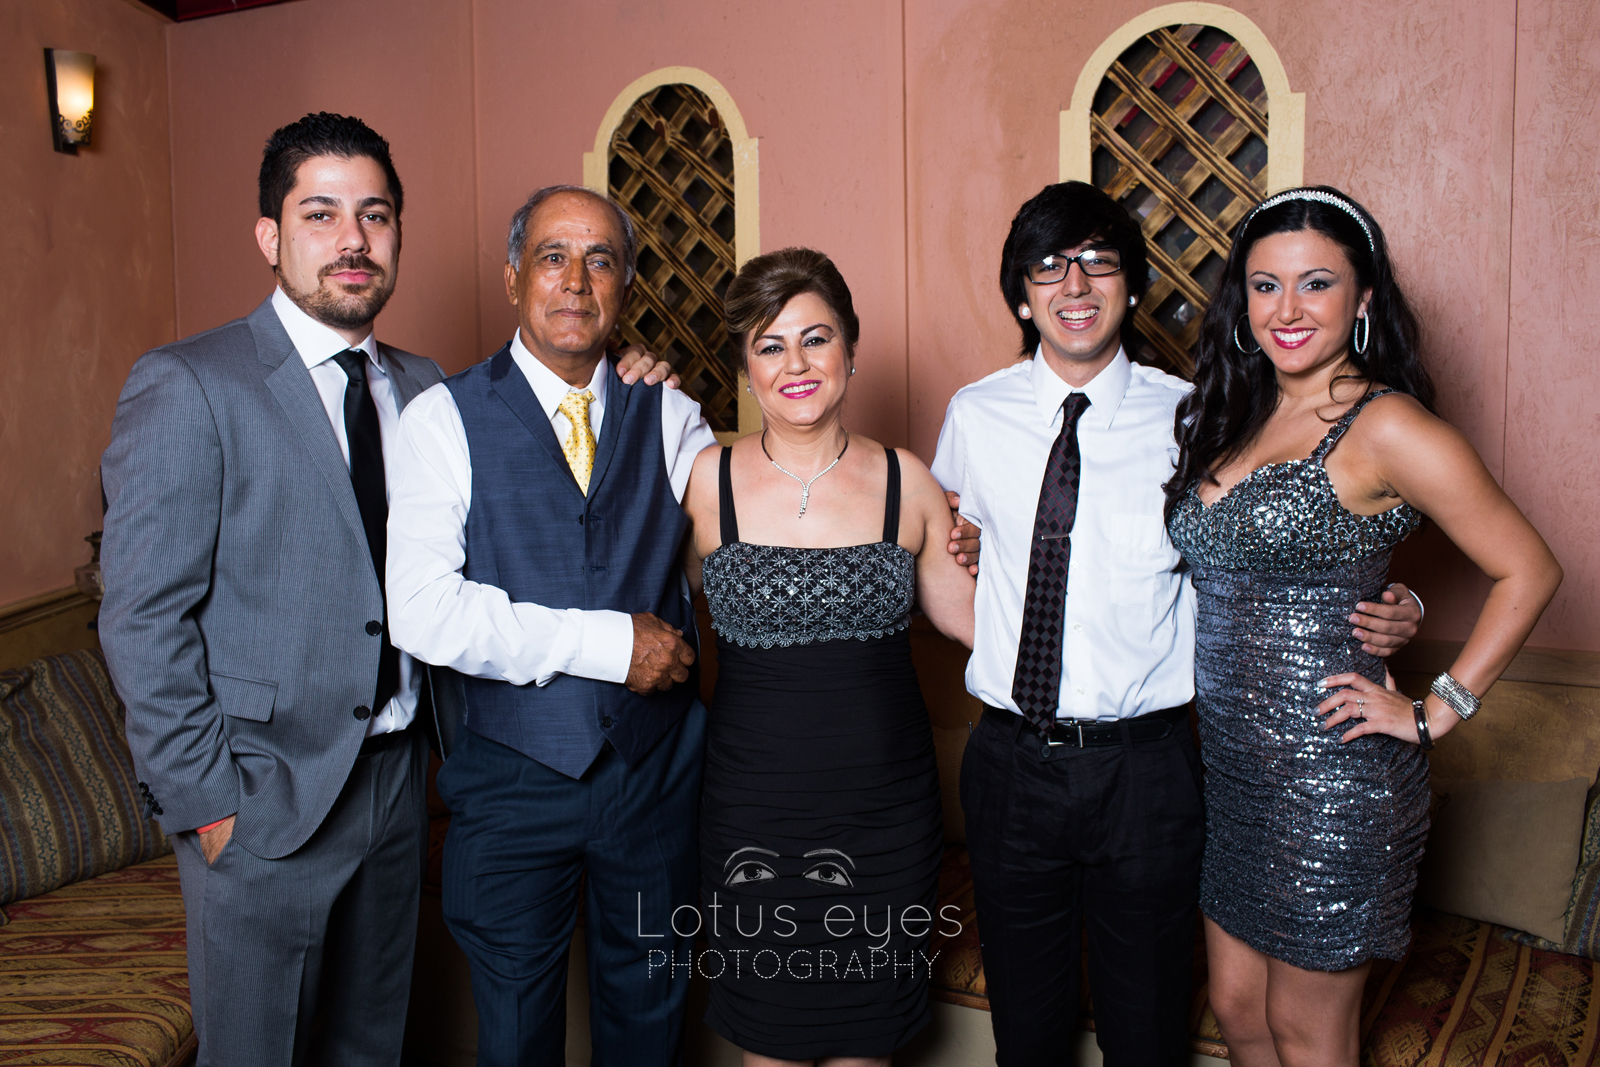 Orlando Wedding Photographer Lotus Eys Photography